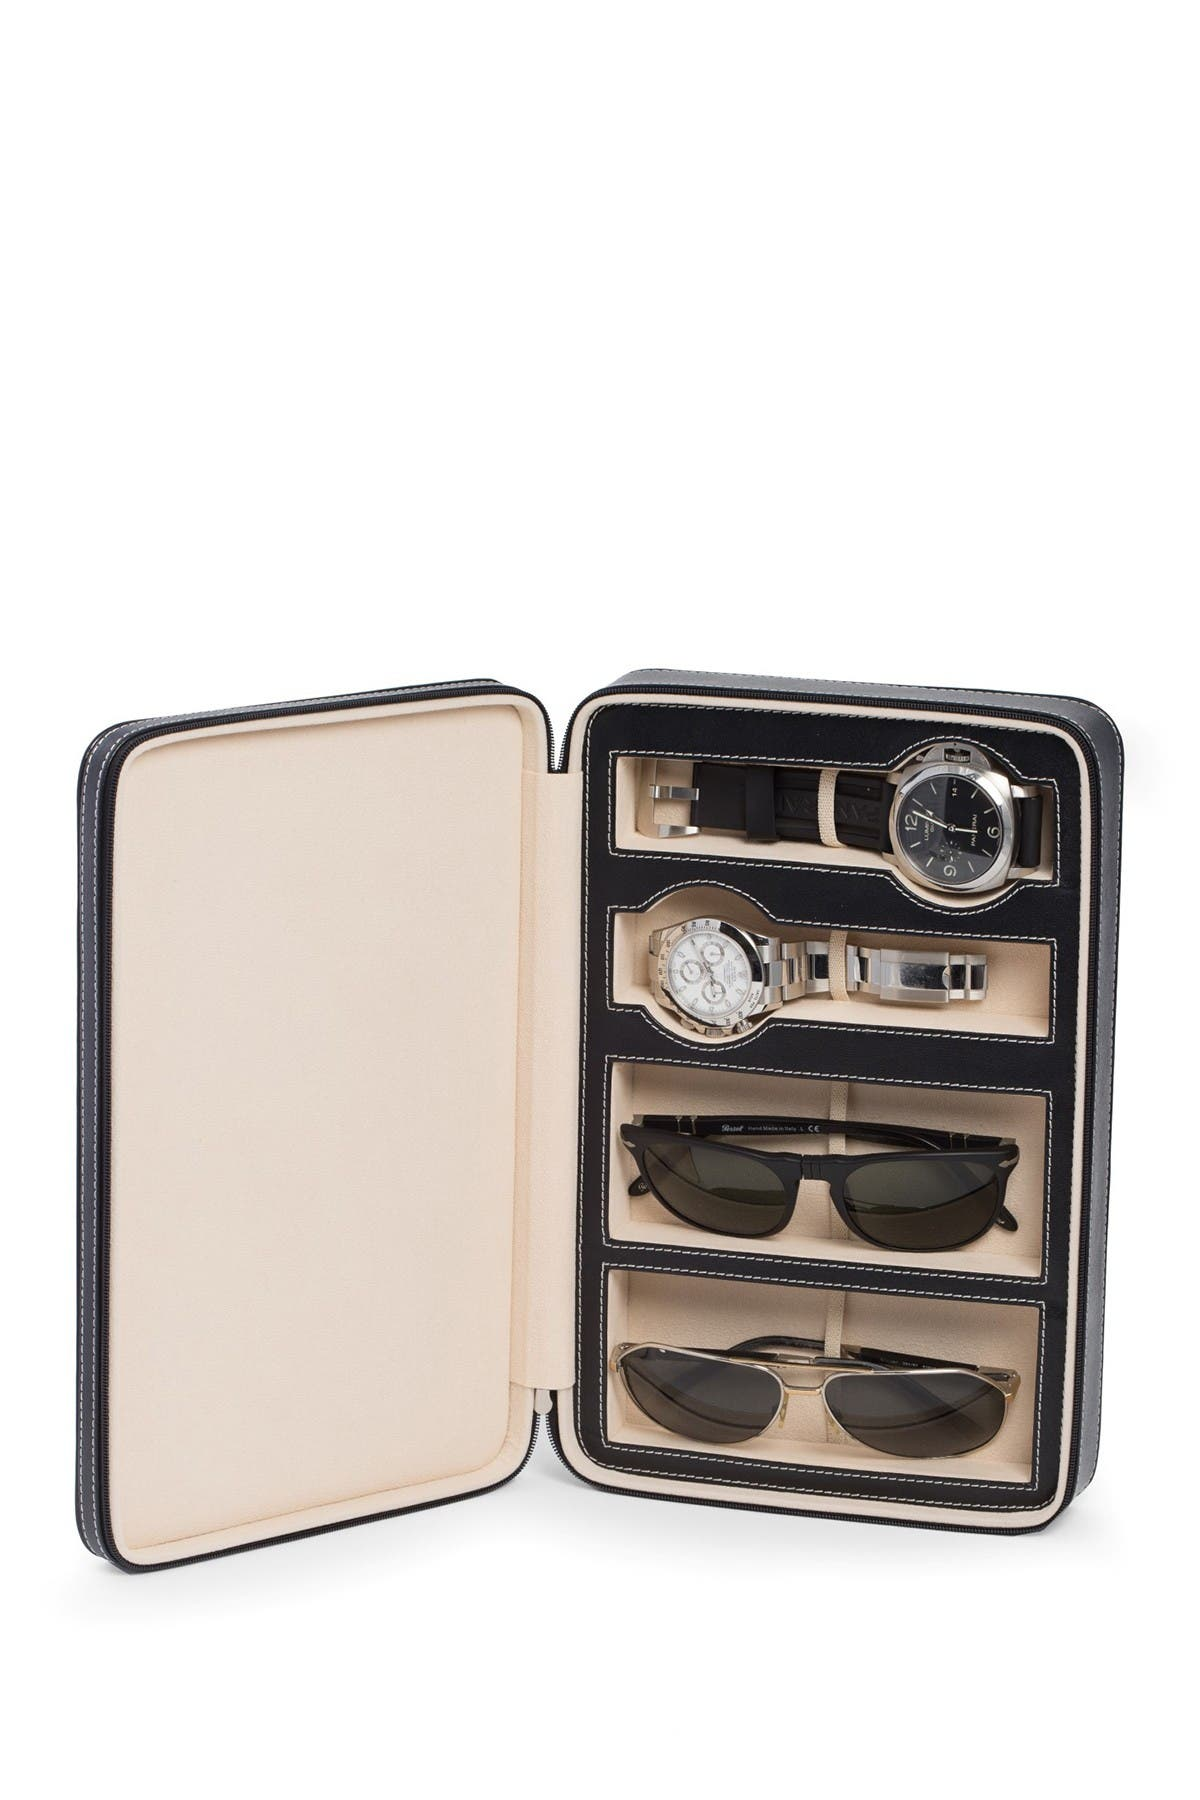 Image of Bey-Berk Black Leather Two Watch & Two Sunglass Travel Case